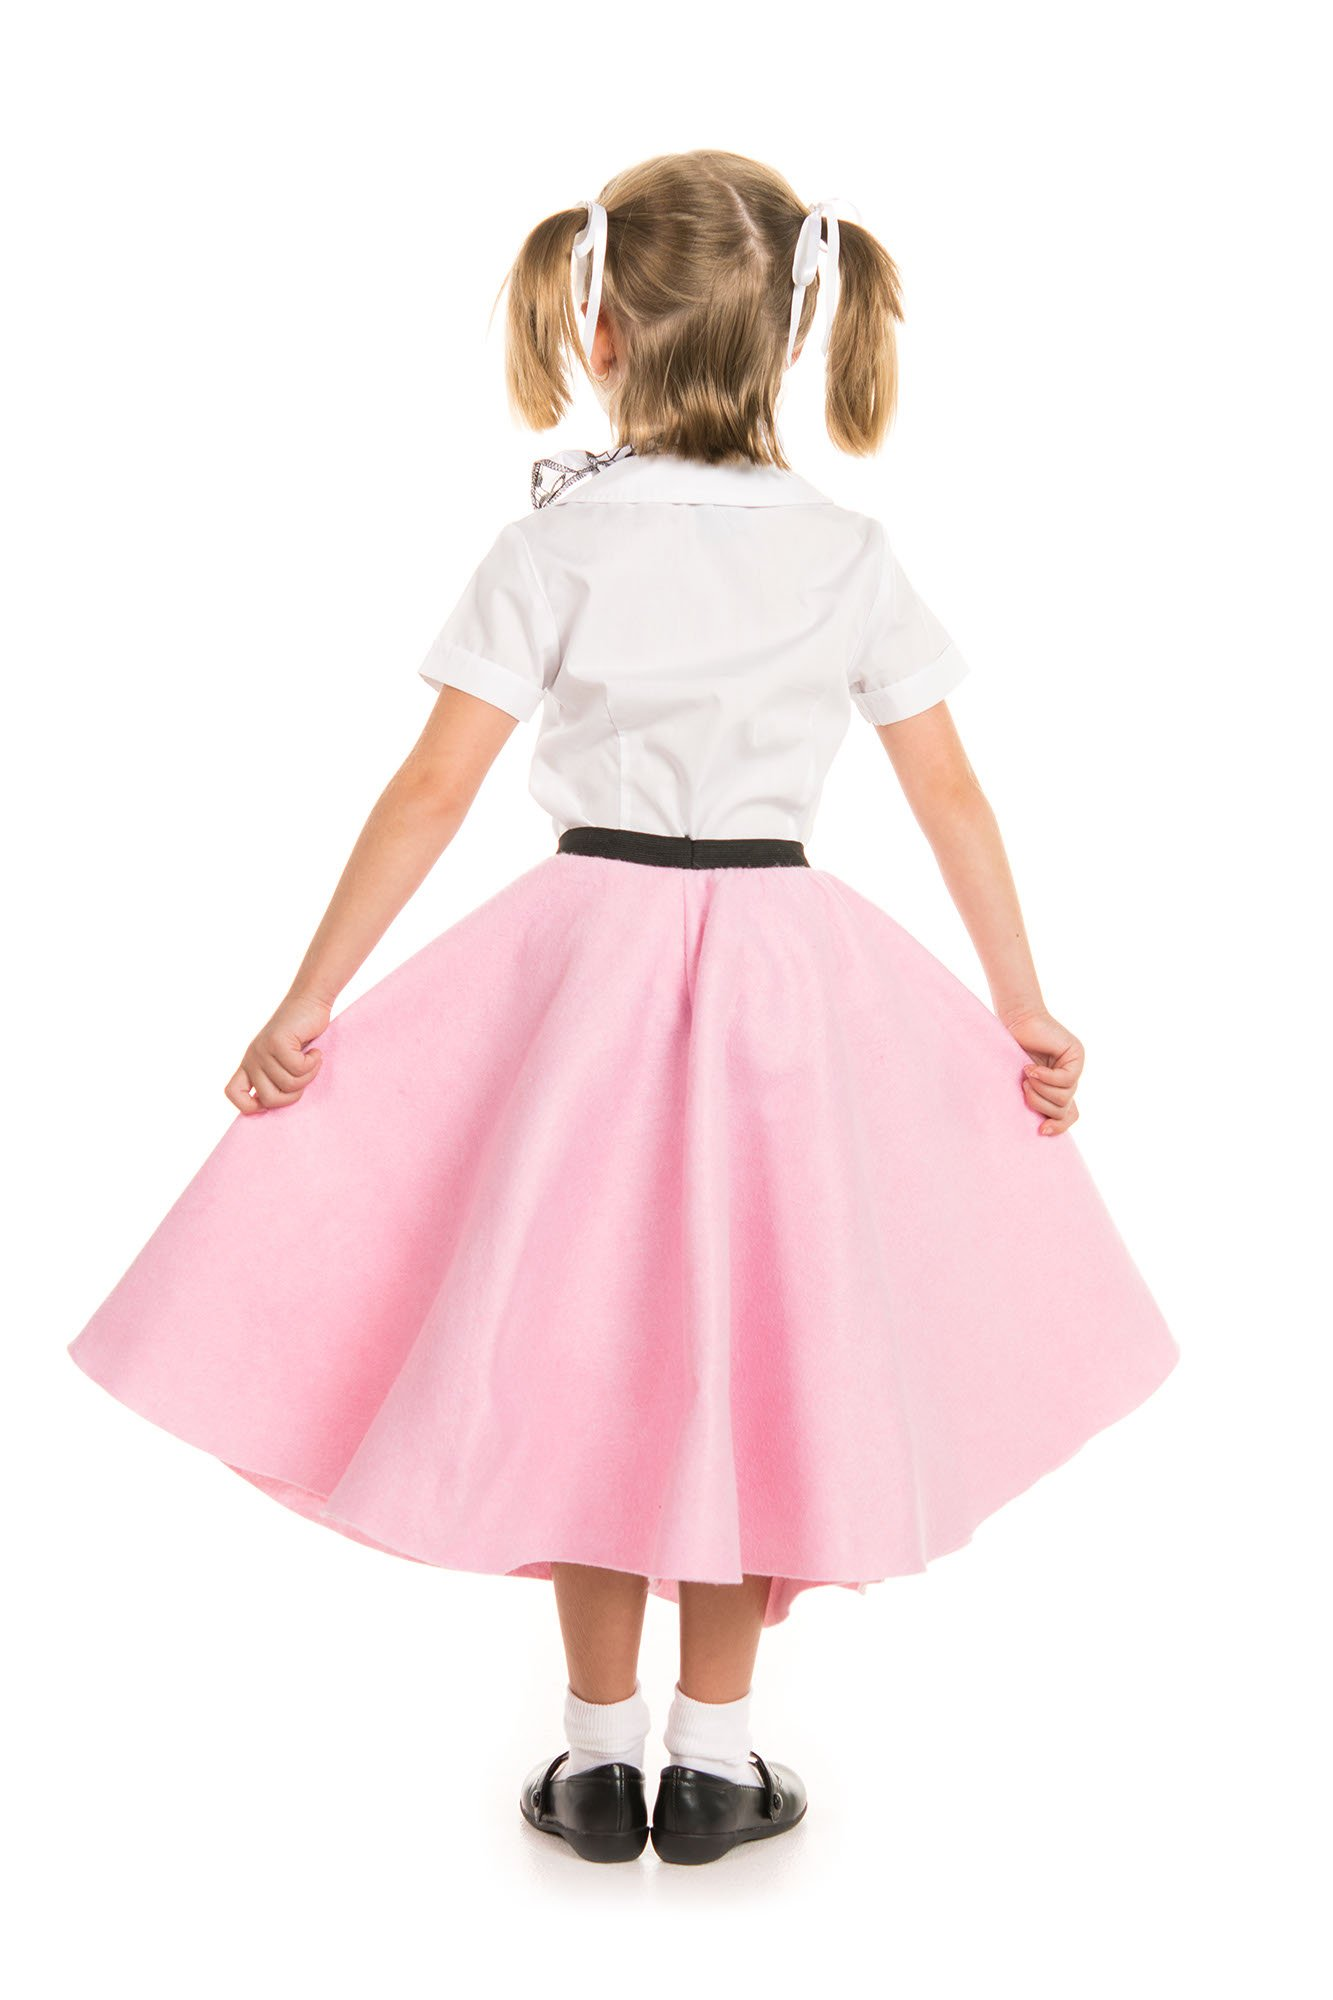 Kidcostumes Poodle Skirt with Musical Note Printed Scarf by Kidcostumes